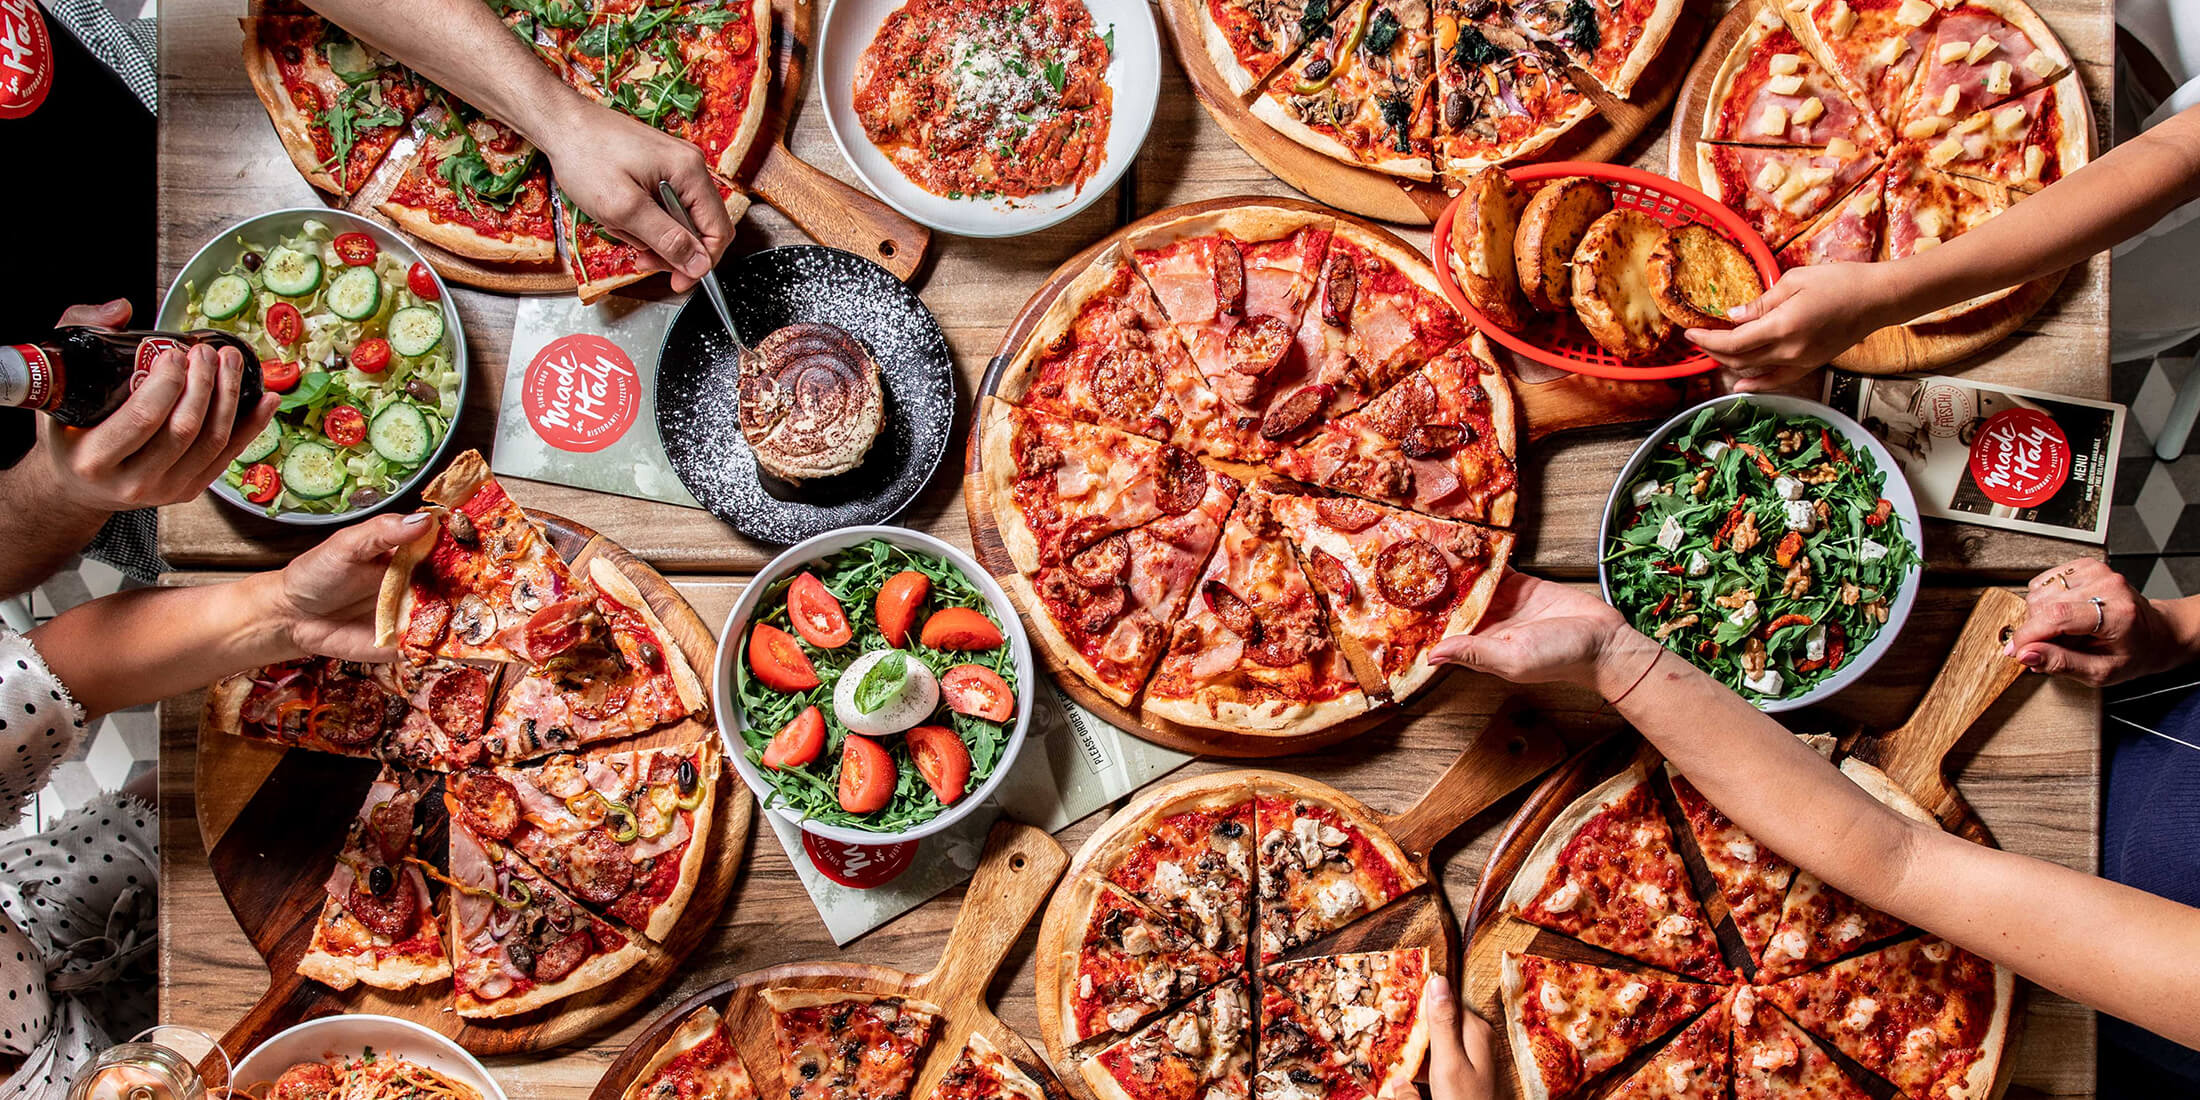 Pizza Delivery Redfern - Made in Italy Redfern